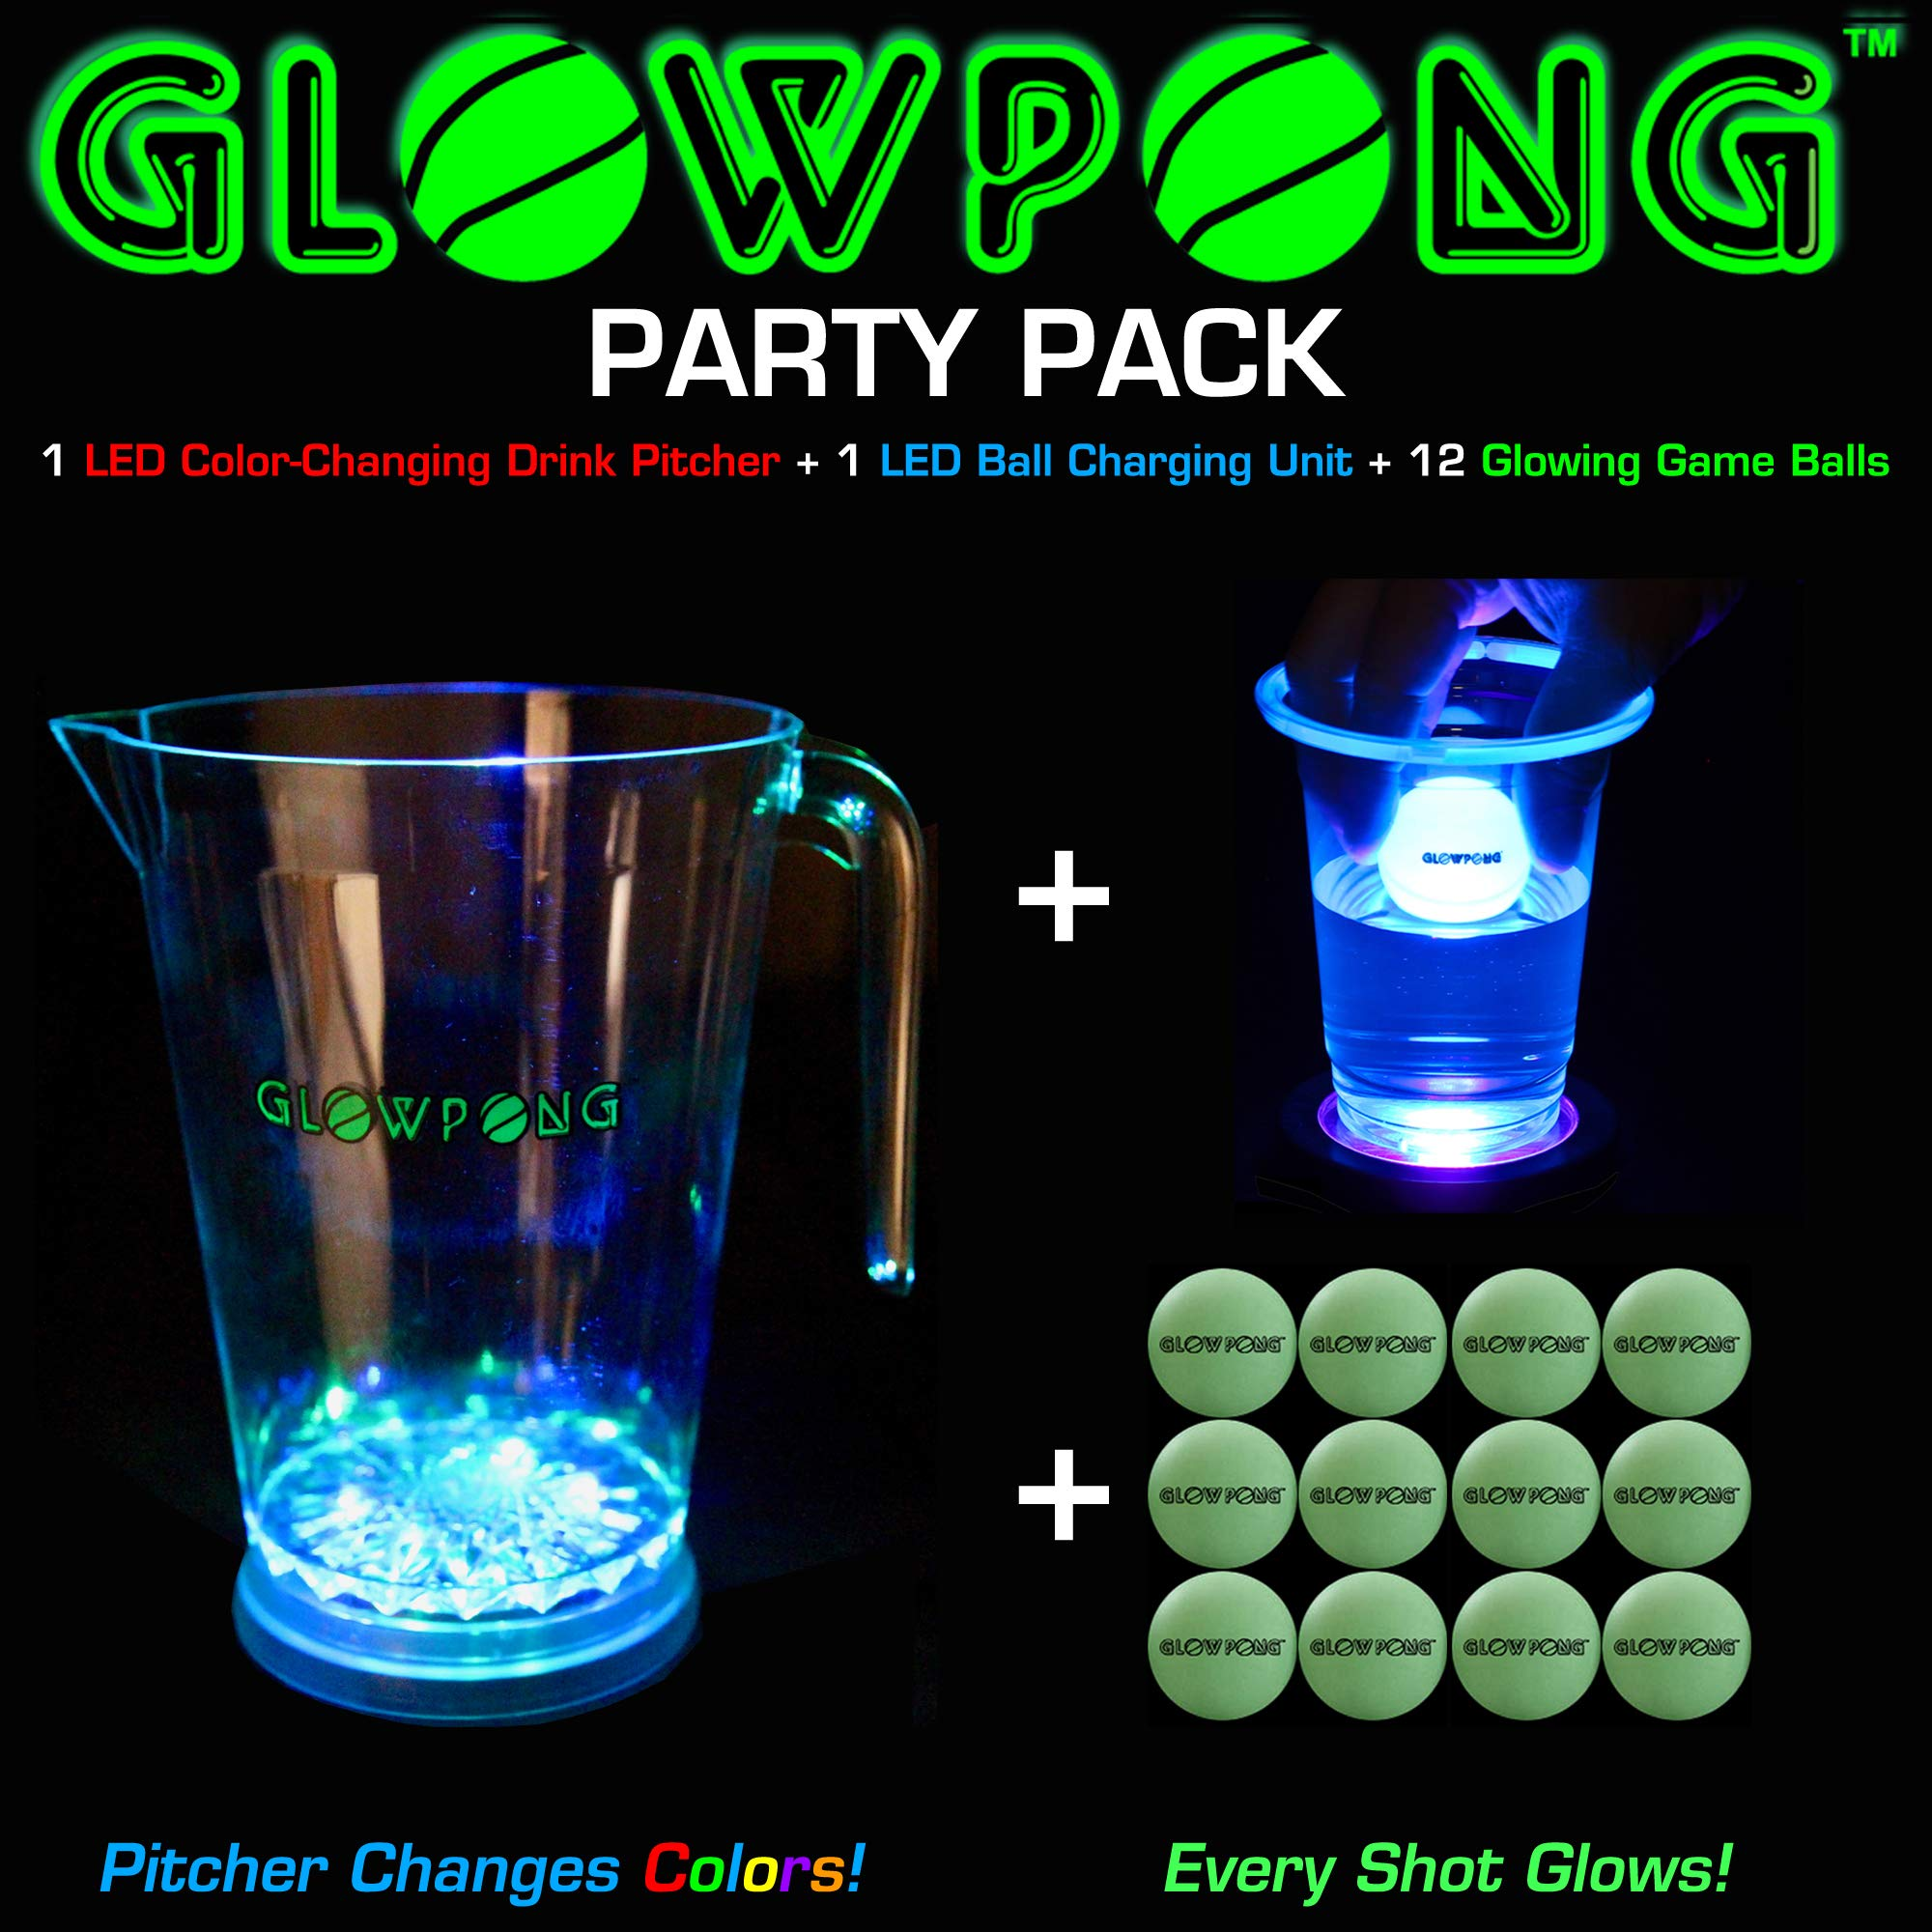 GLOWPONG Party Pack - 1 LED Color-Changing Drink Pitcher + 1 LED Ball Charging Unit + 12 Glowing Game Balls for Indoor Outdoor Nighttime Glow-in-The-Dark Beer Pong Drinking Game Fun and Competition by GLOWPONG